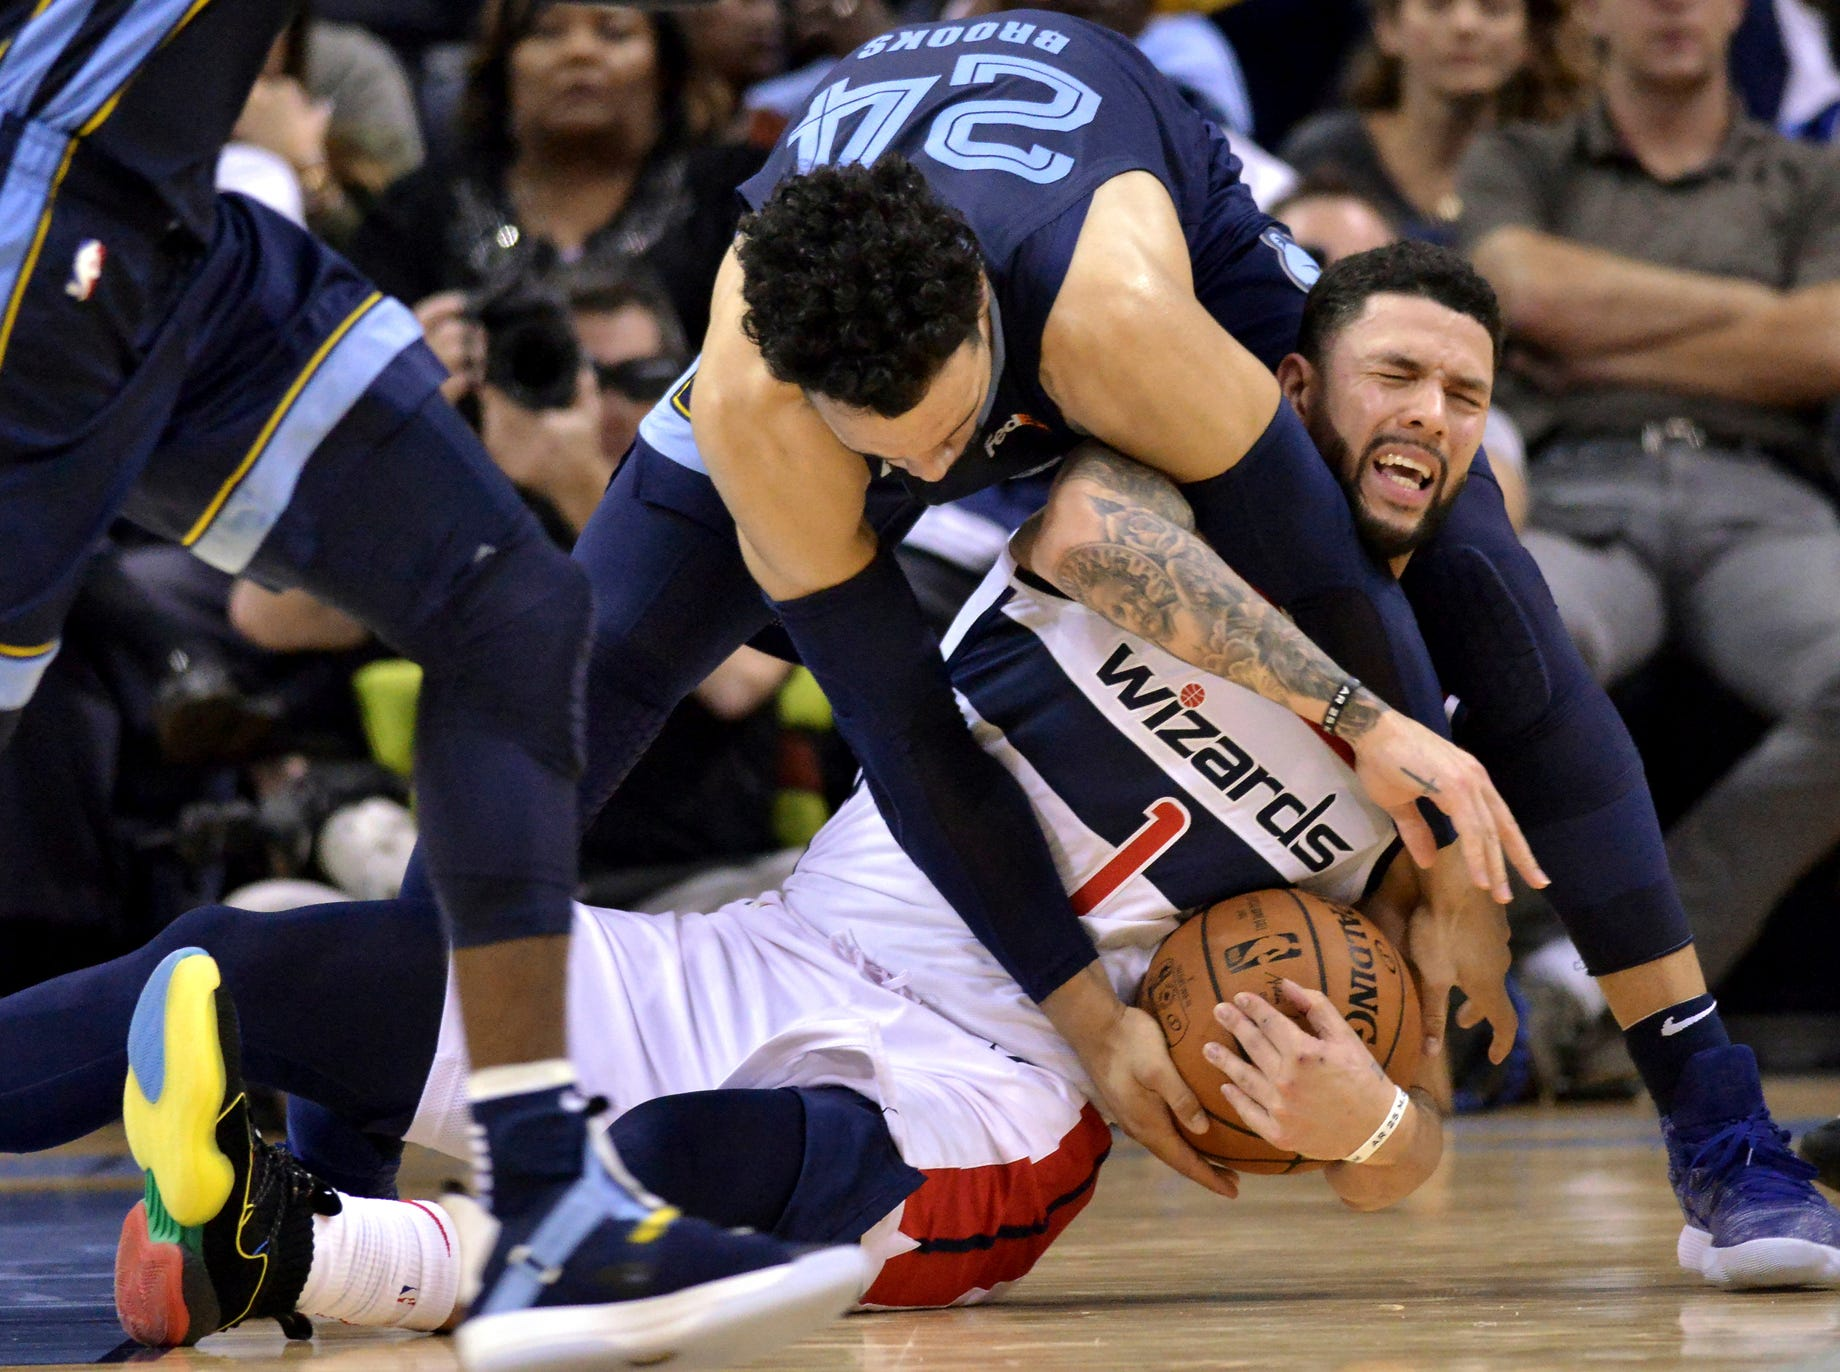 Memphis Grizzlies guard Dillon Brooks (24) and Washington Wizards guard Austin Rivers (1) struggle for control of the ball in the second half of an NBA basketball game, Tuesday, Oct. 30, 2018, in Memphis, Tenn. (AP Photo/Brandon Dill)